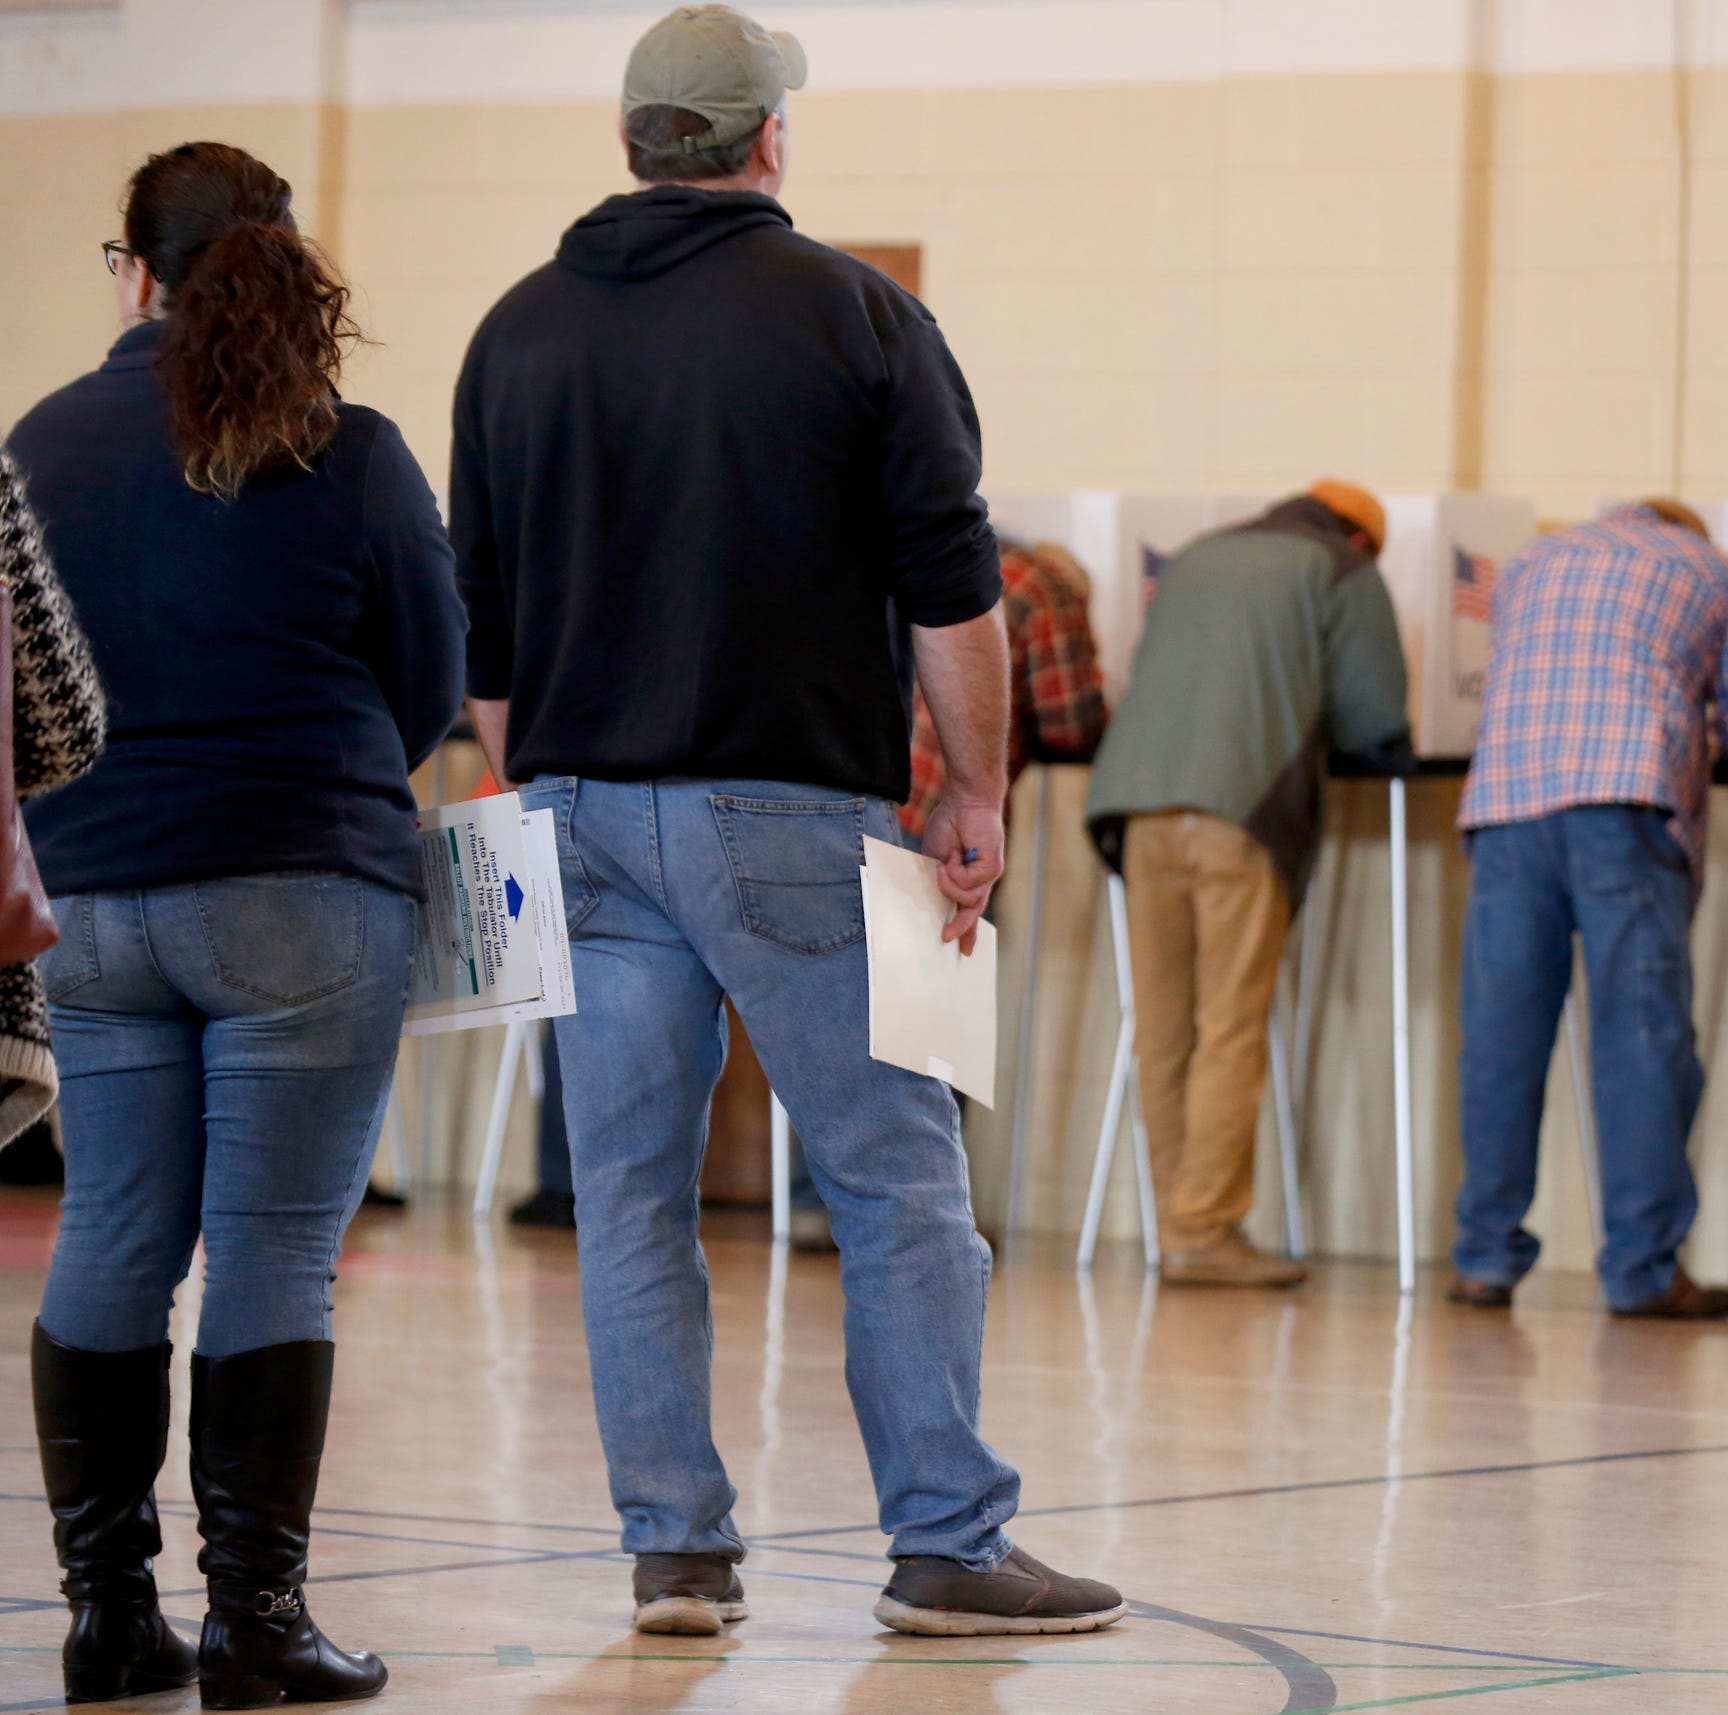 Voters line up waiting for an open spot to to cast their ballots inside the gymnasium at Union Lake Baptist in Commerce Township on November 6, 2018.